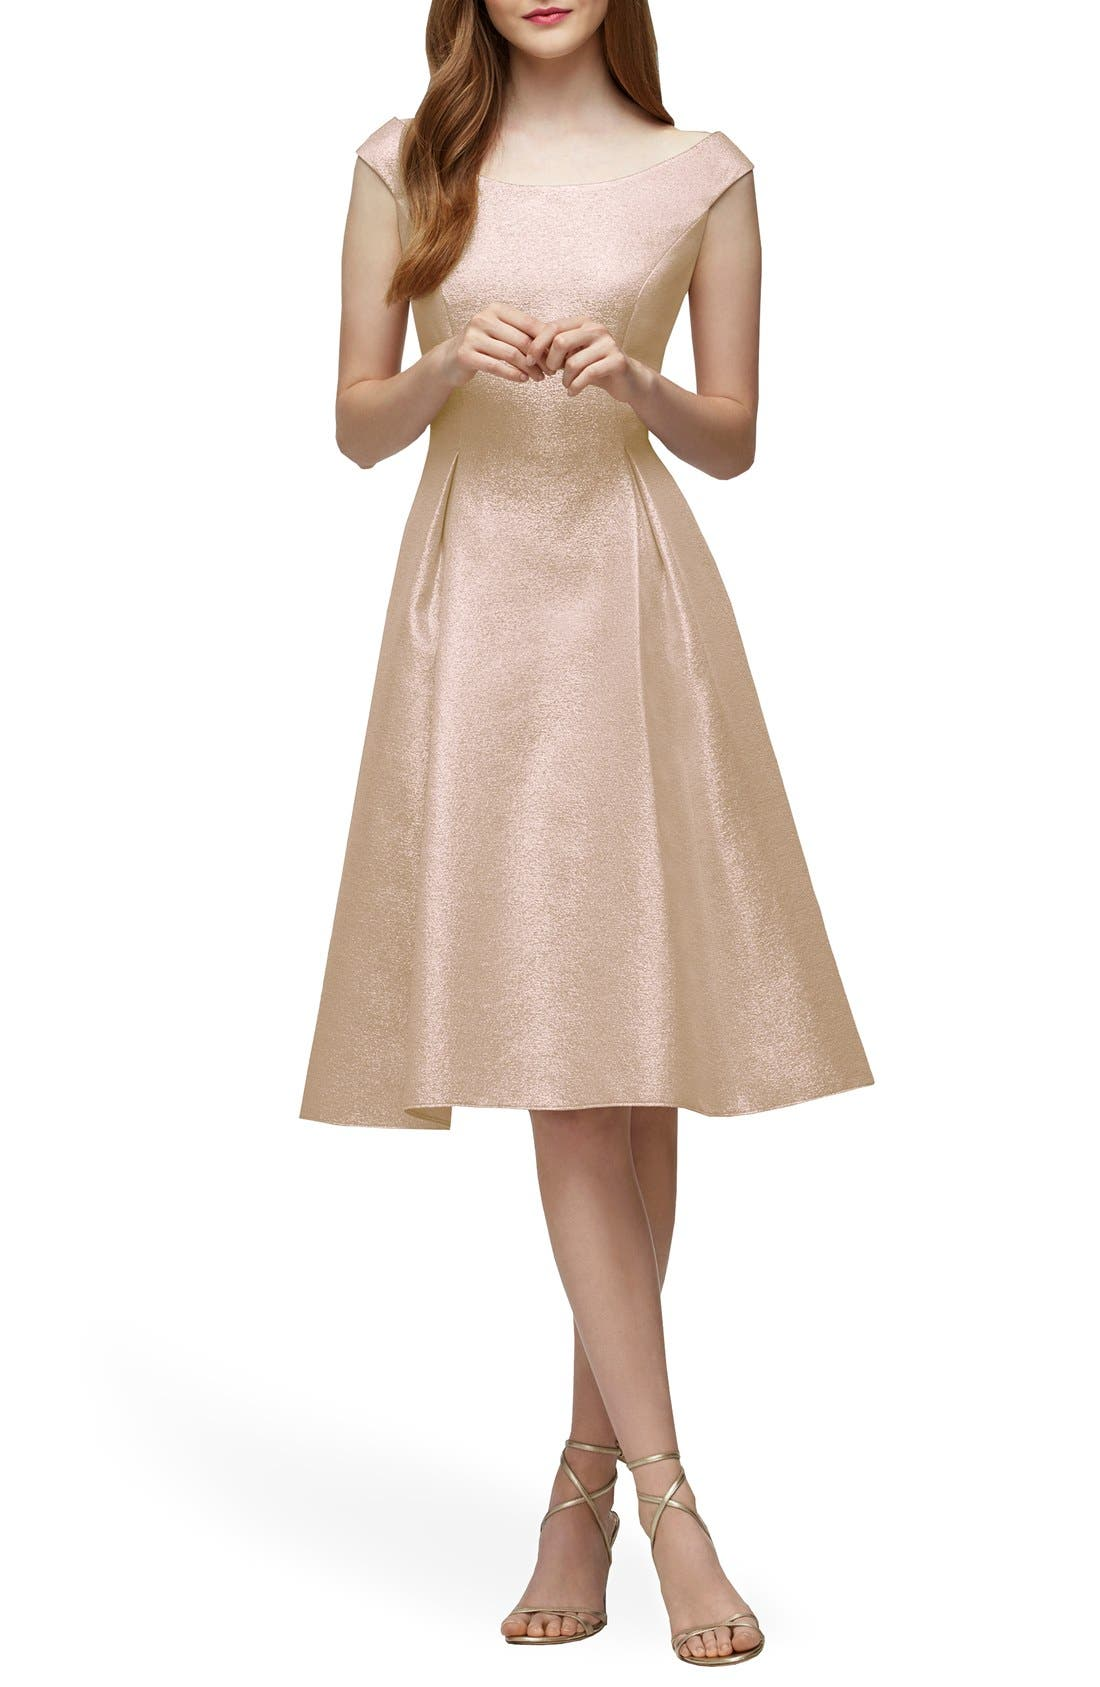 Alternate Image 1 Selected - Lela Rose Bridesmaid Portrait Neck Metallic Fit & Flare Dress